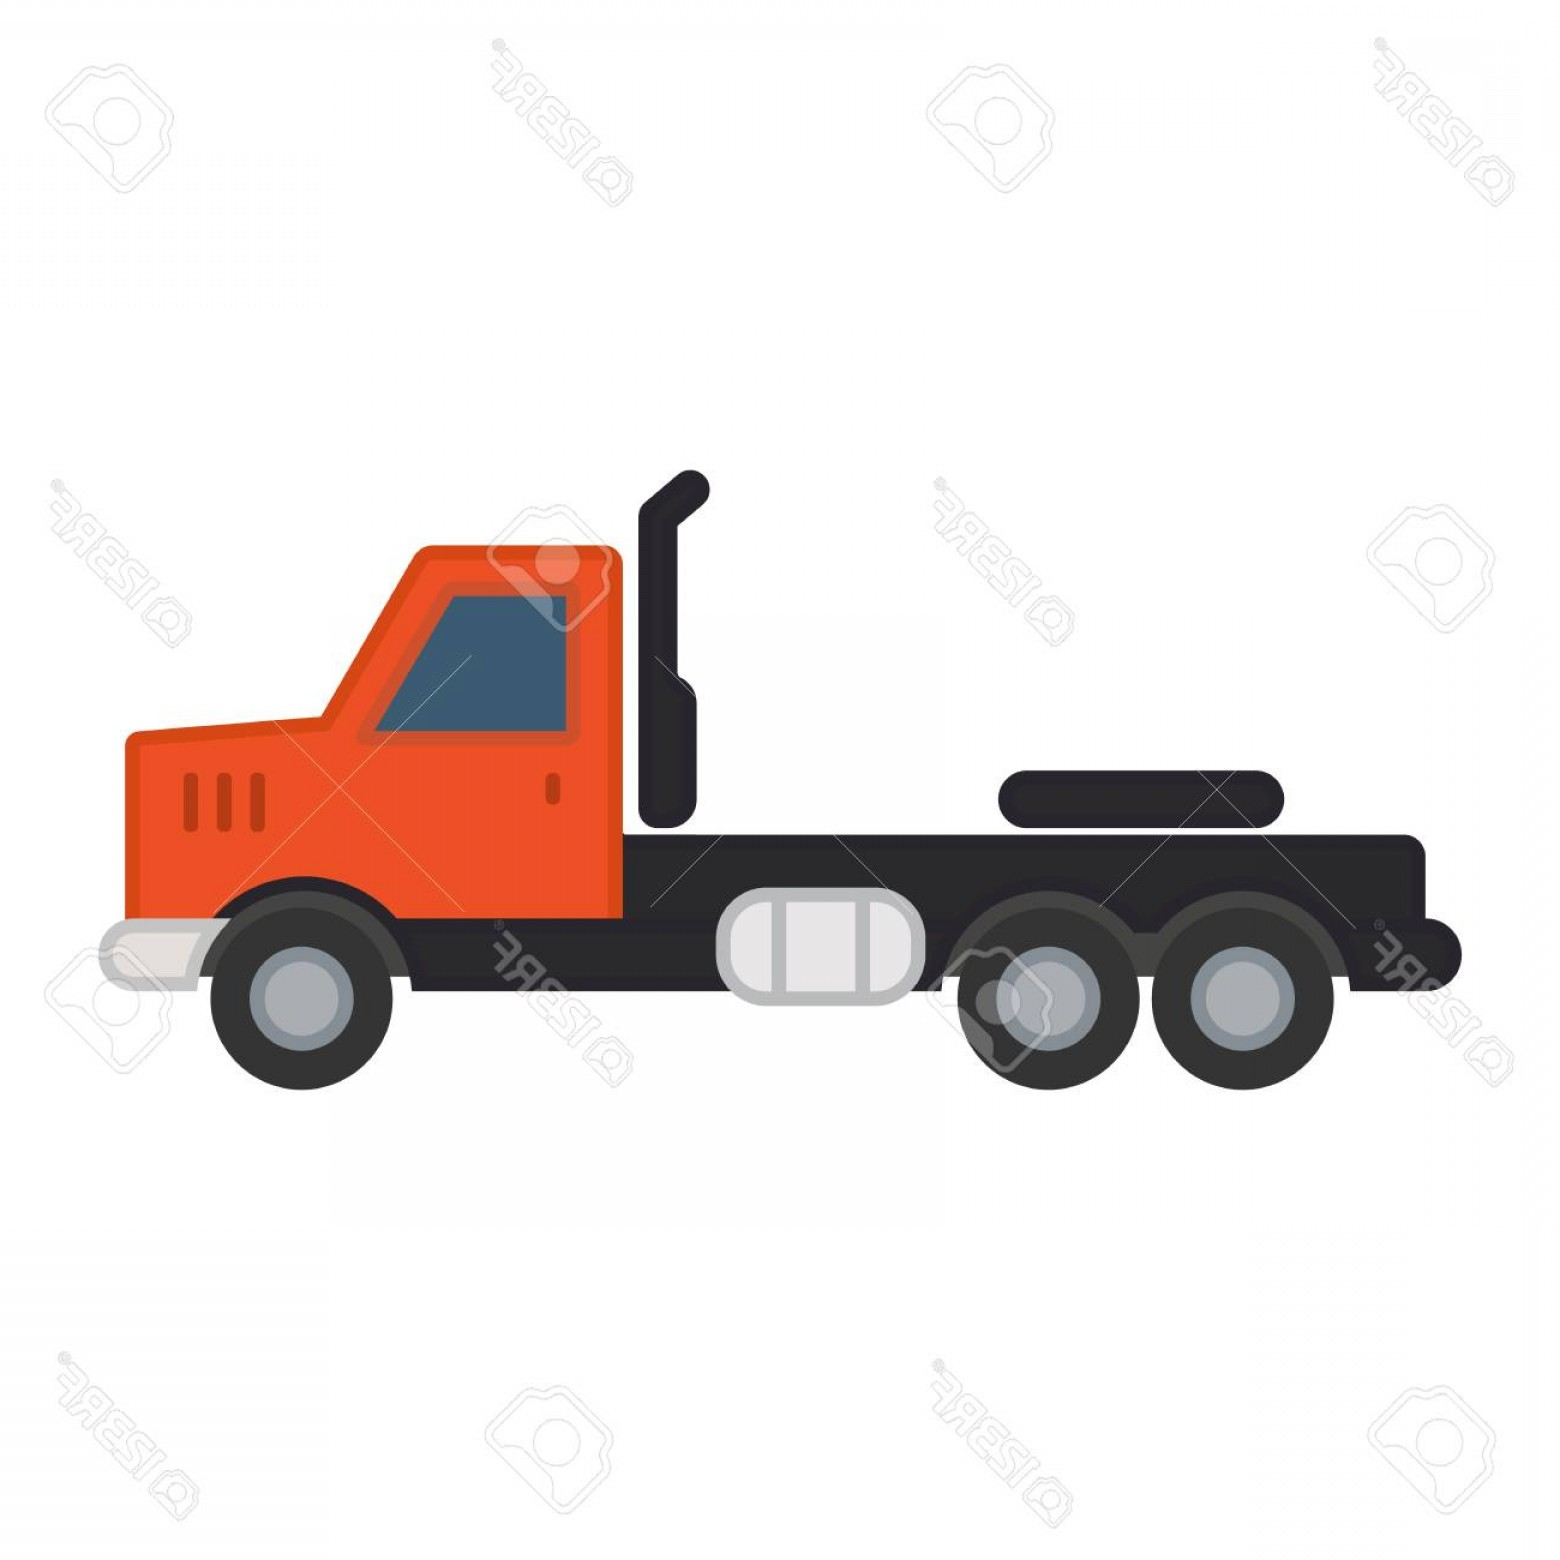 Vector Truck And Trailer Hauling: Photostock Vector Truck Without Trailer Simple Icon On White Background Ground Transport